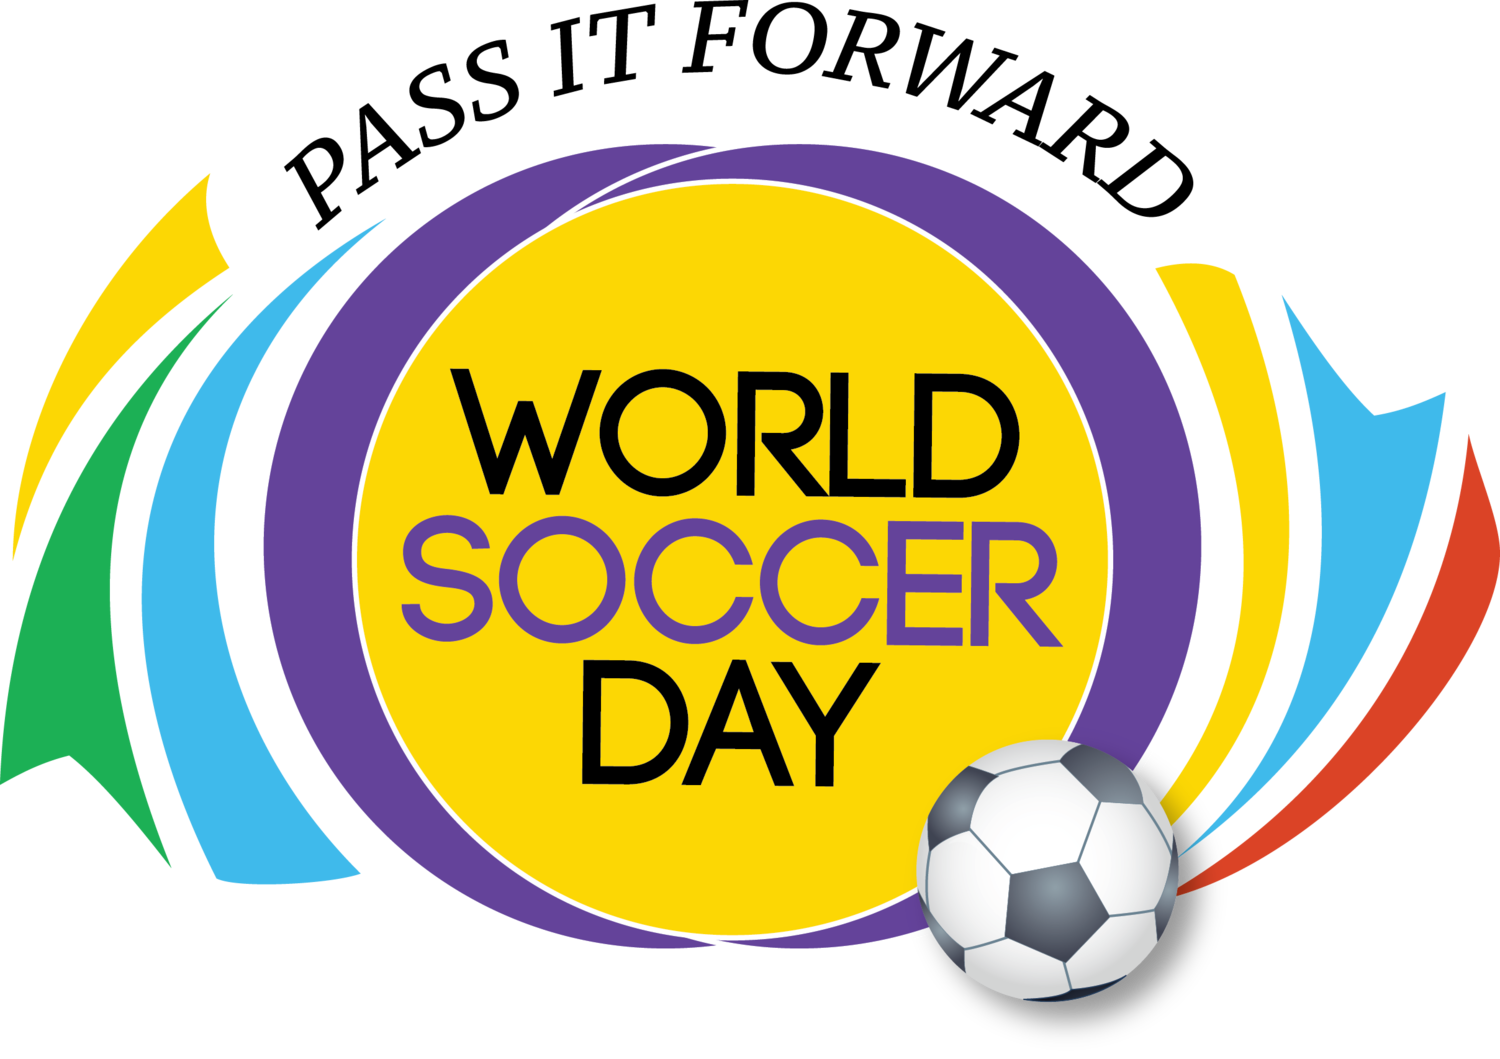 World Soccer Day